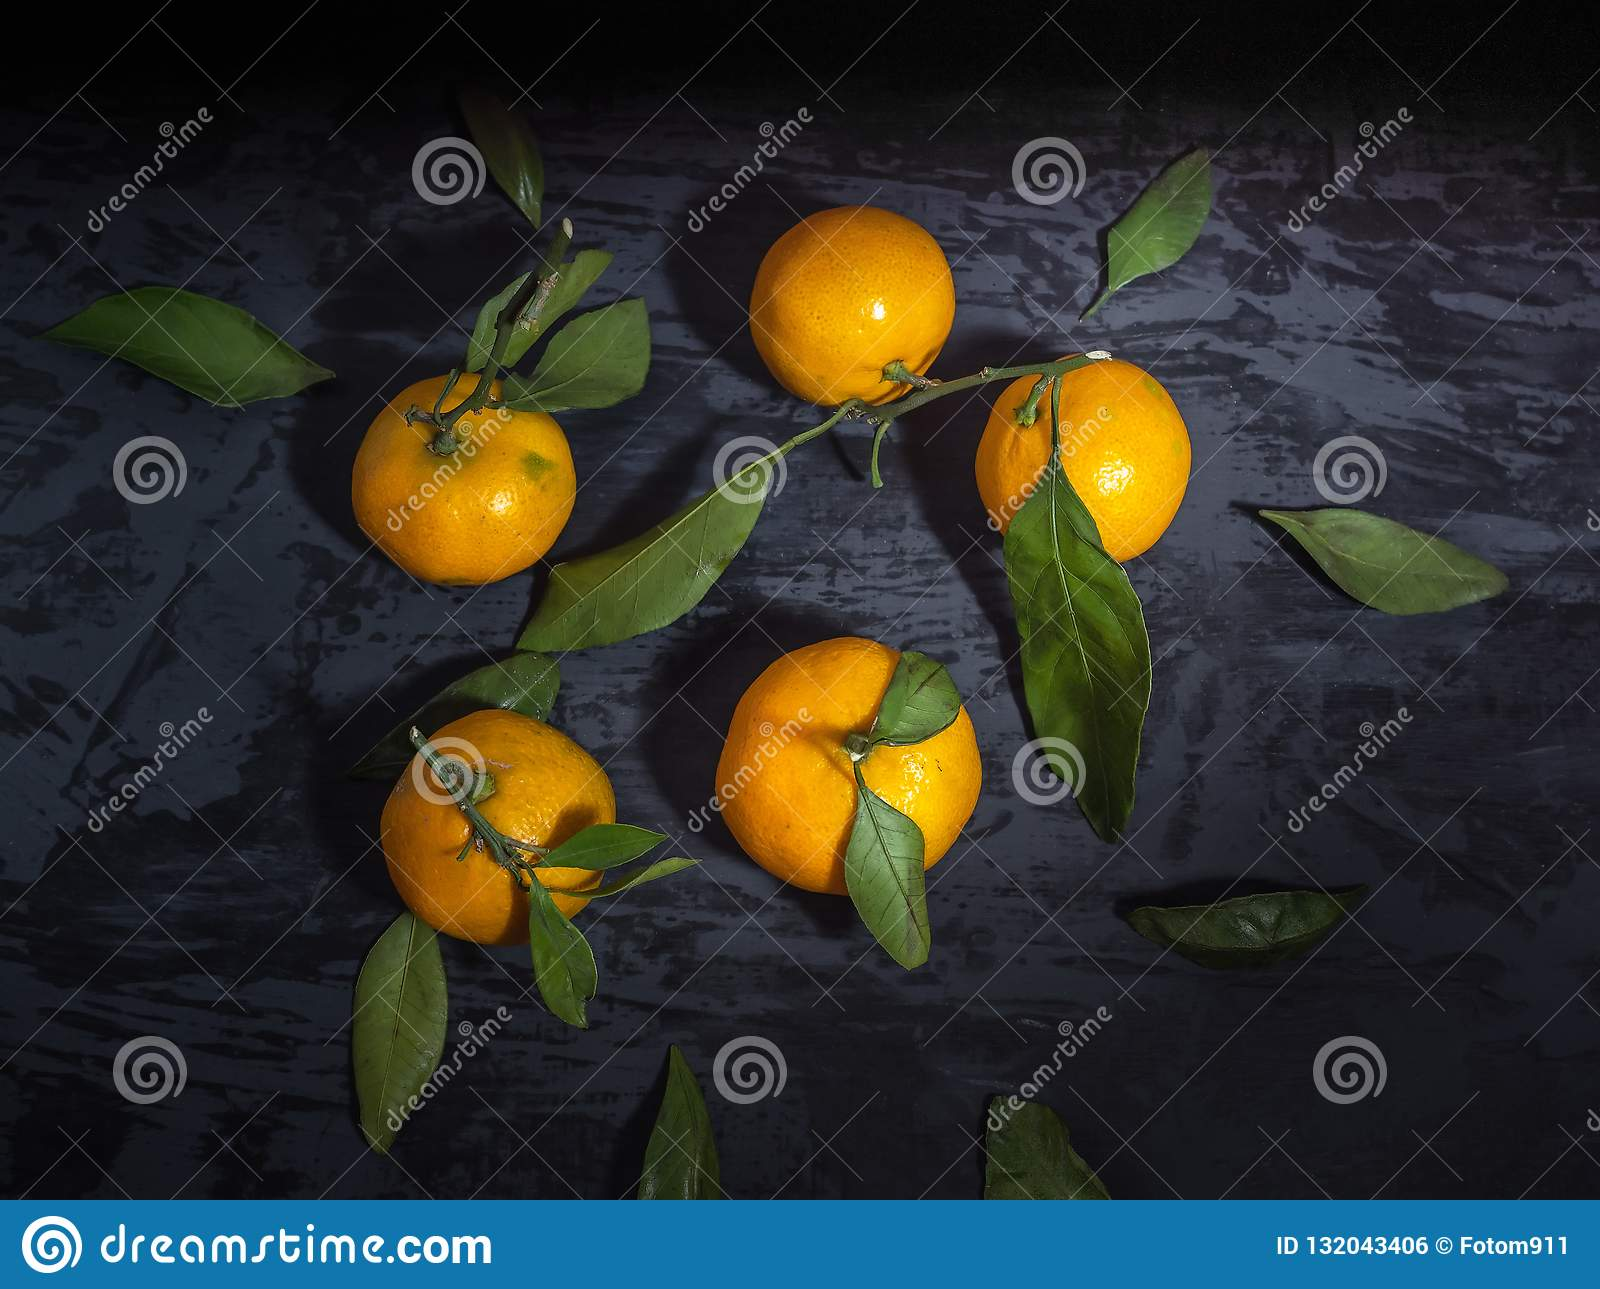 A scattering of tangerines with green leaflets on a dark background, top view